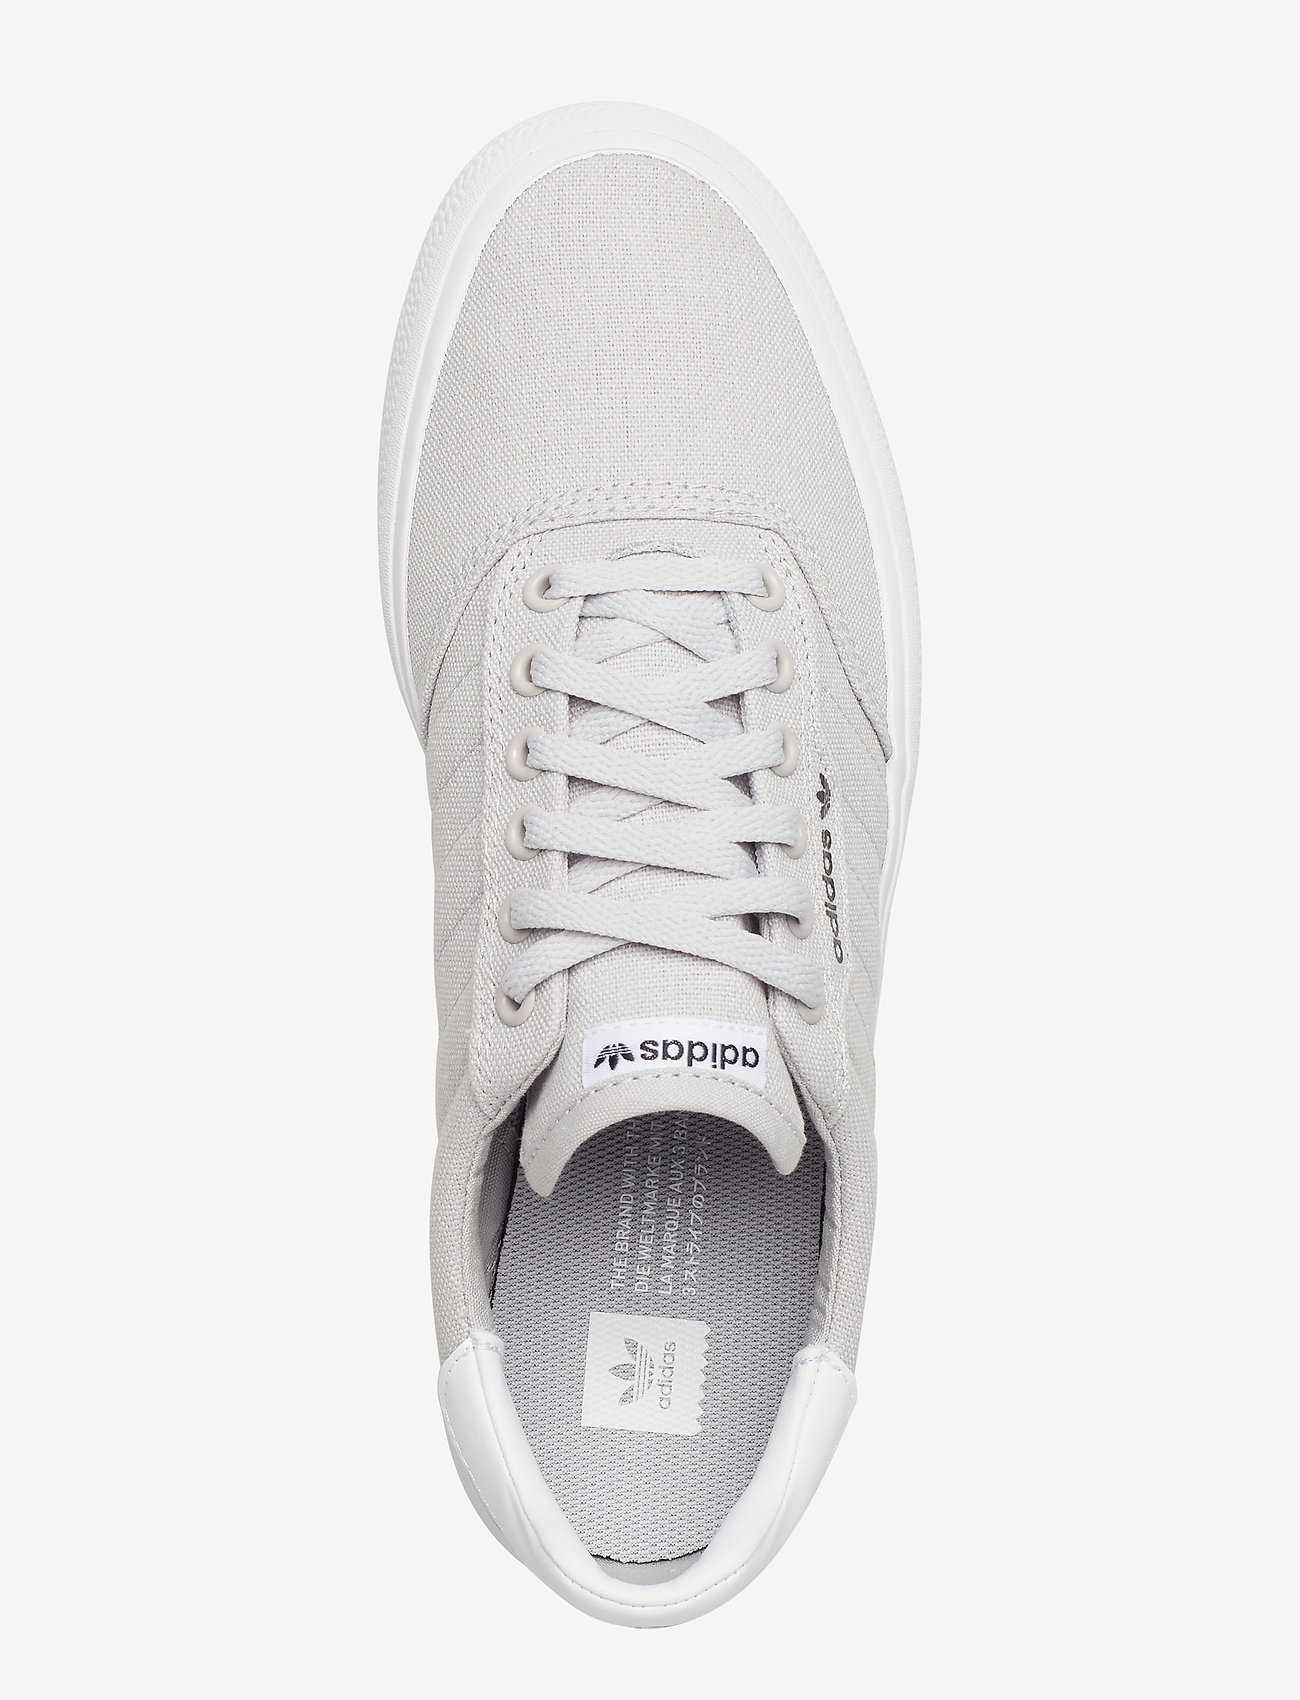 Adidas Originals 3mc - Sneakers Lgsogr/lgsogr/ftwwht